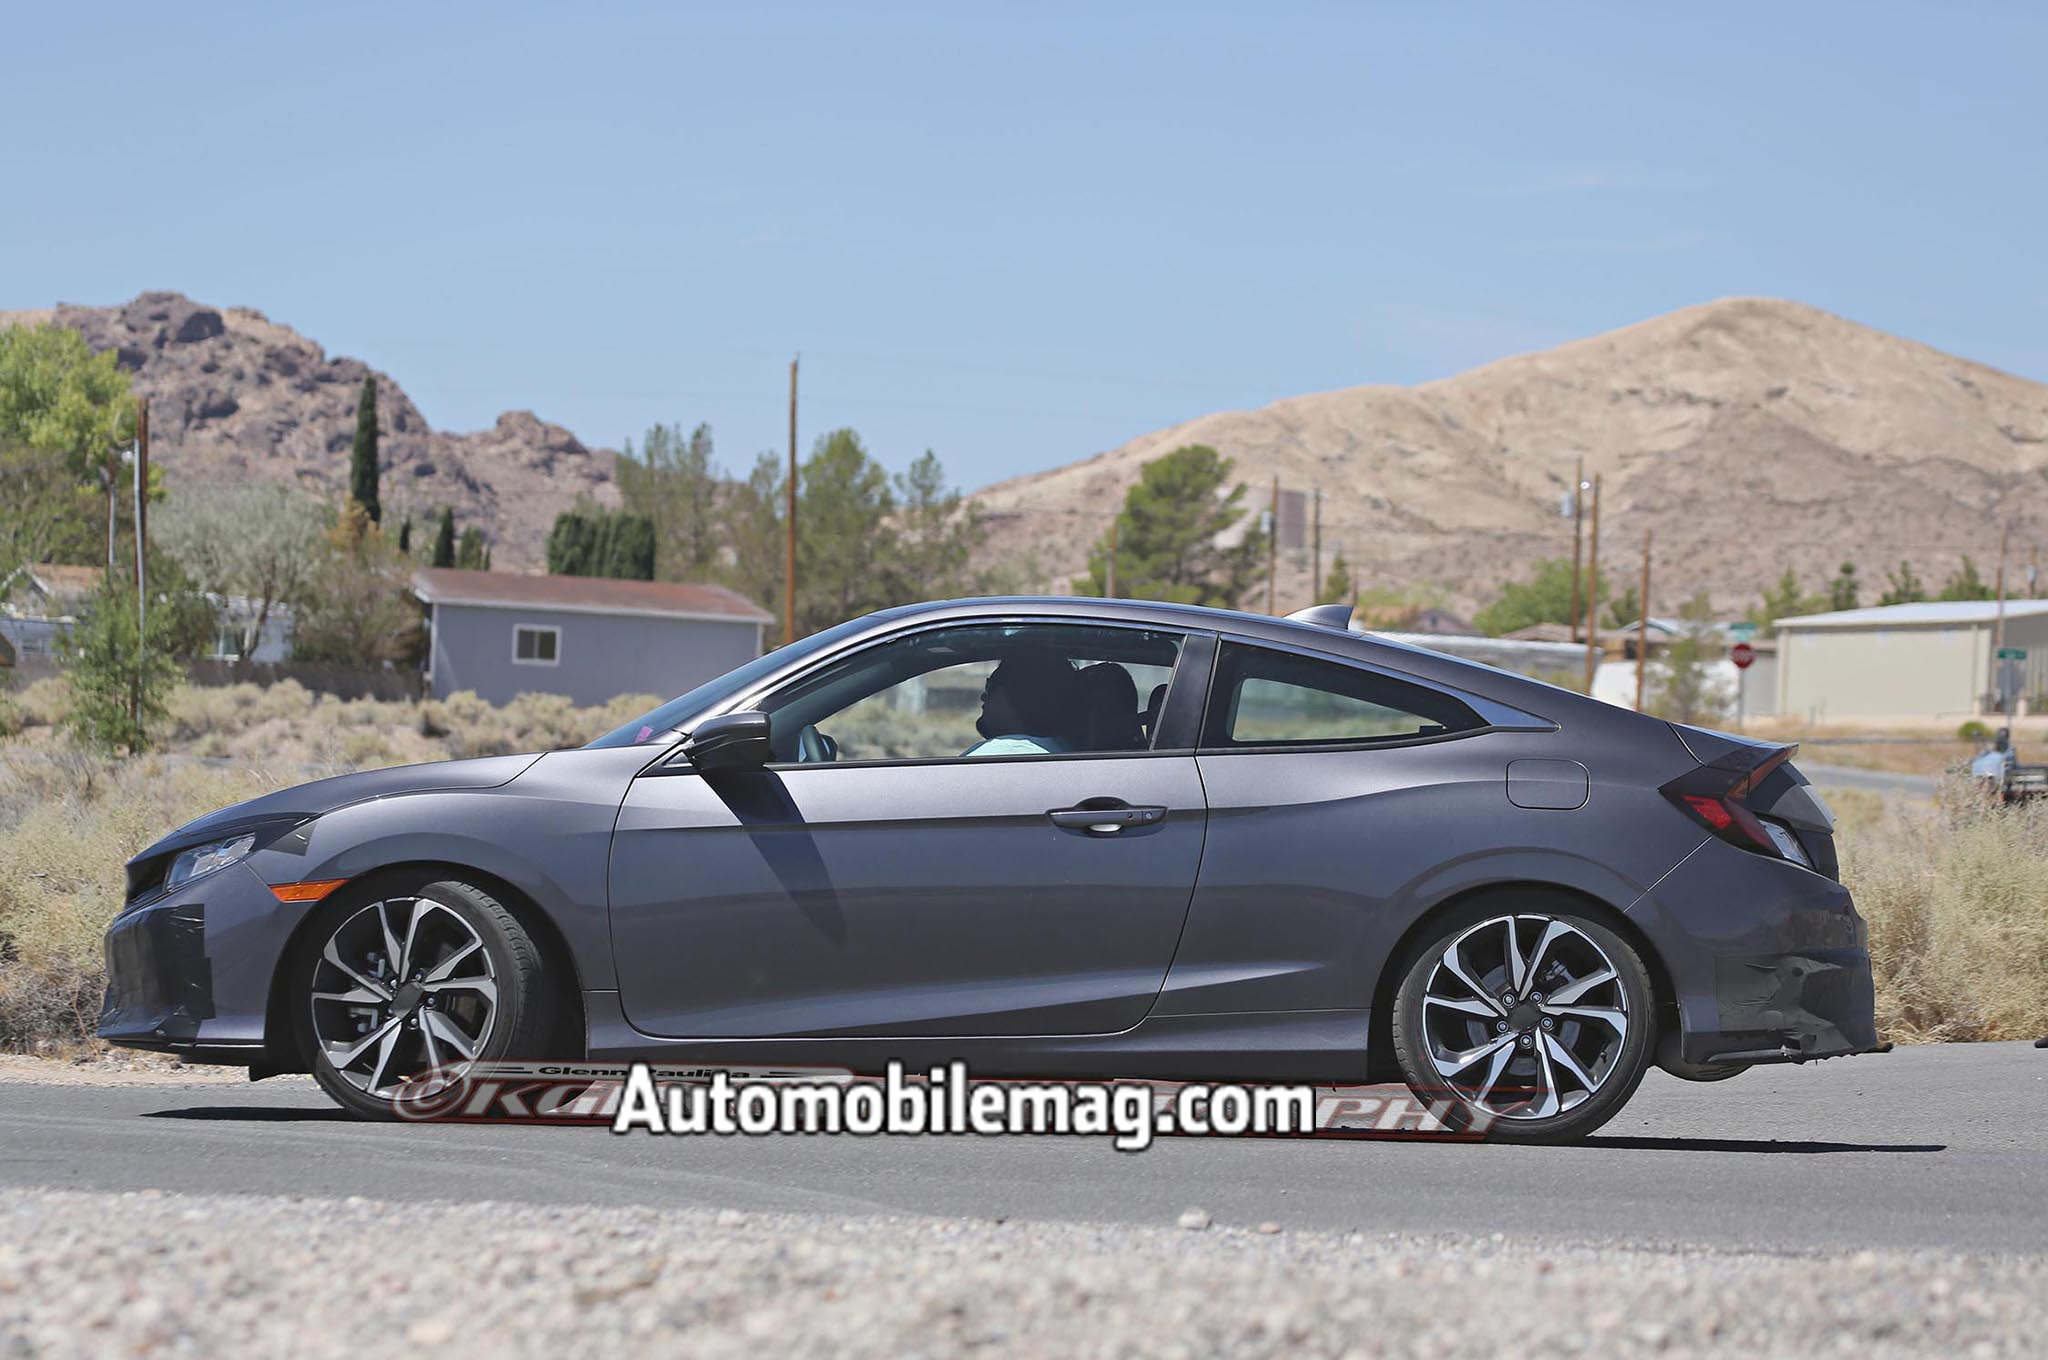 spied 2017 honda civic si coupe tests wearing minimal camo. Black Bedroom Furniture Sets. Home Design Ideas